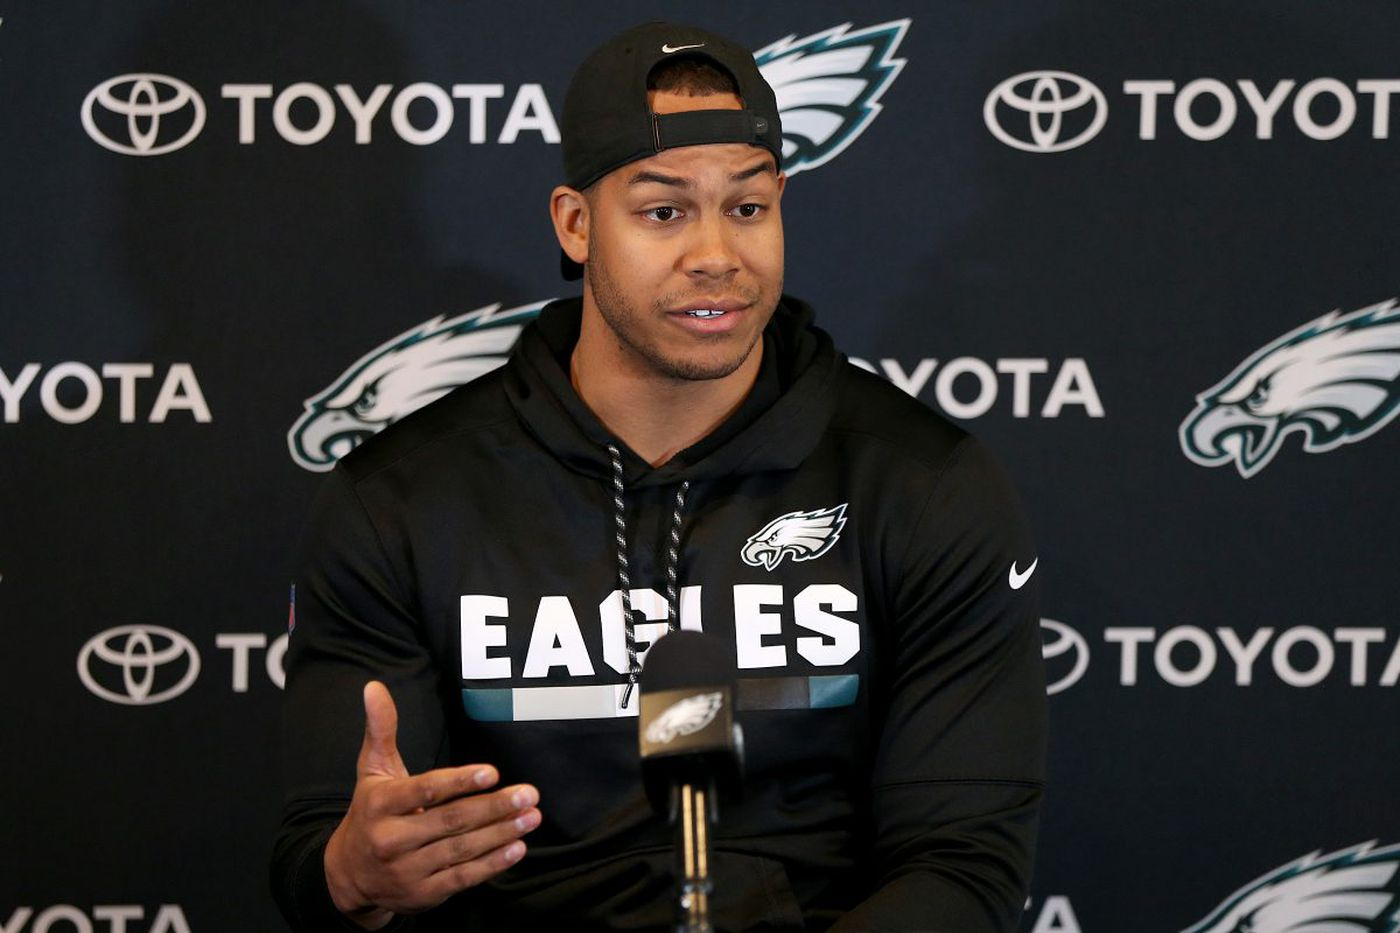 Eagles LB Jordan Hicks knows he can be productive … if healthy